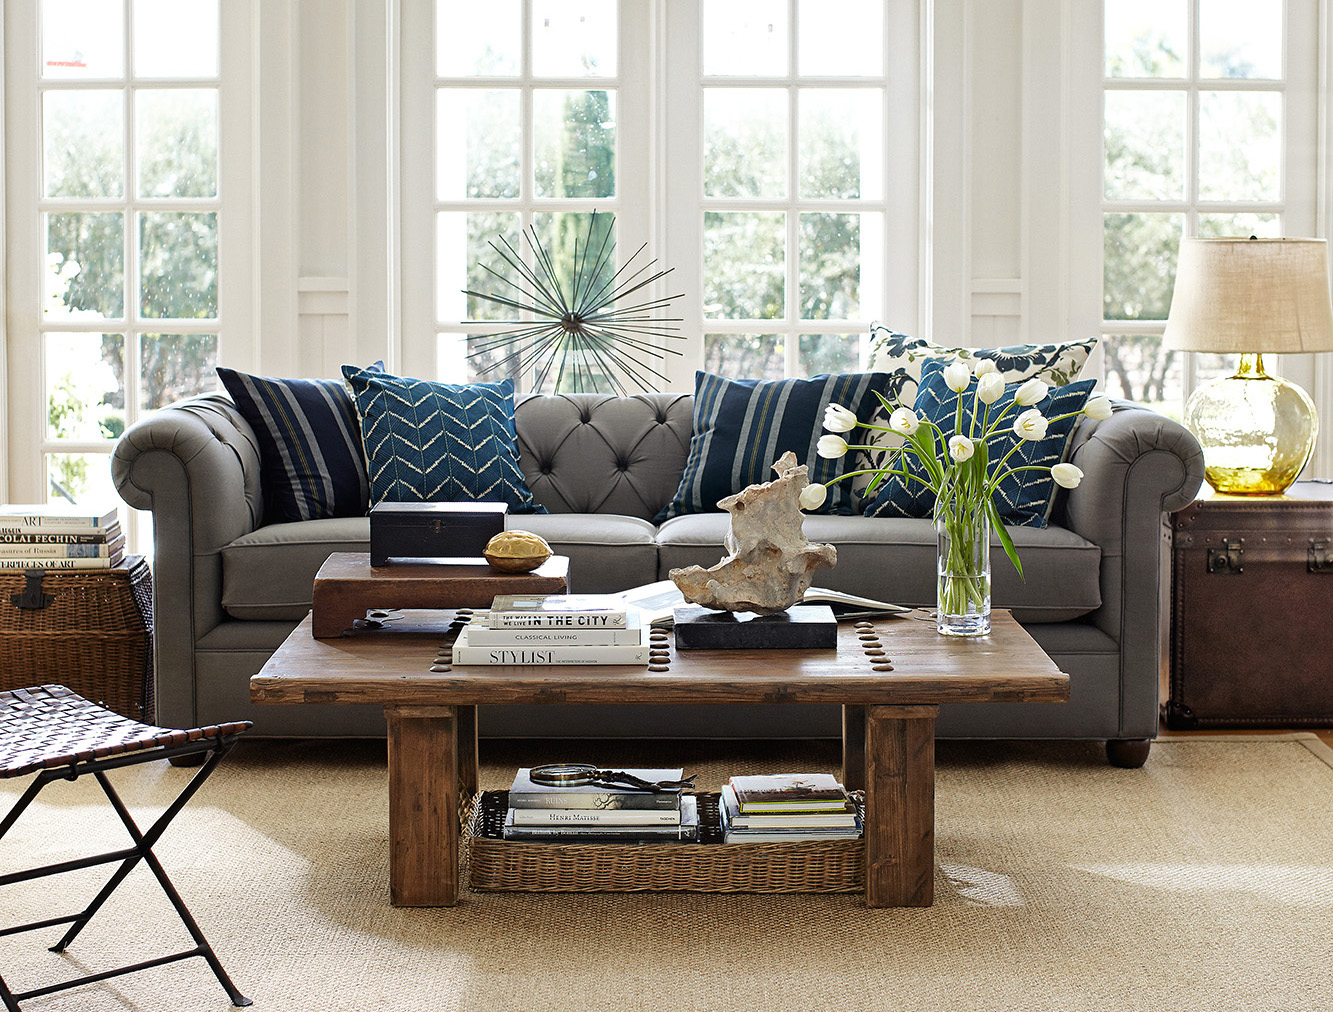 Chesterfield sofa from Pottery Barn. Photo: Pottery Barn.